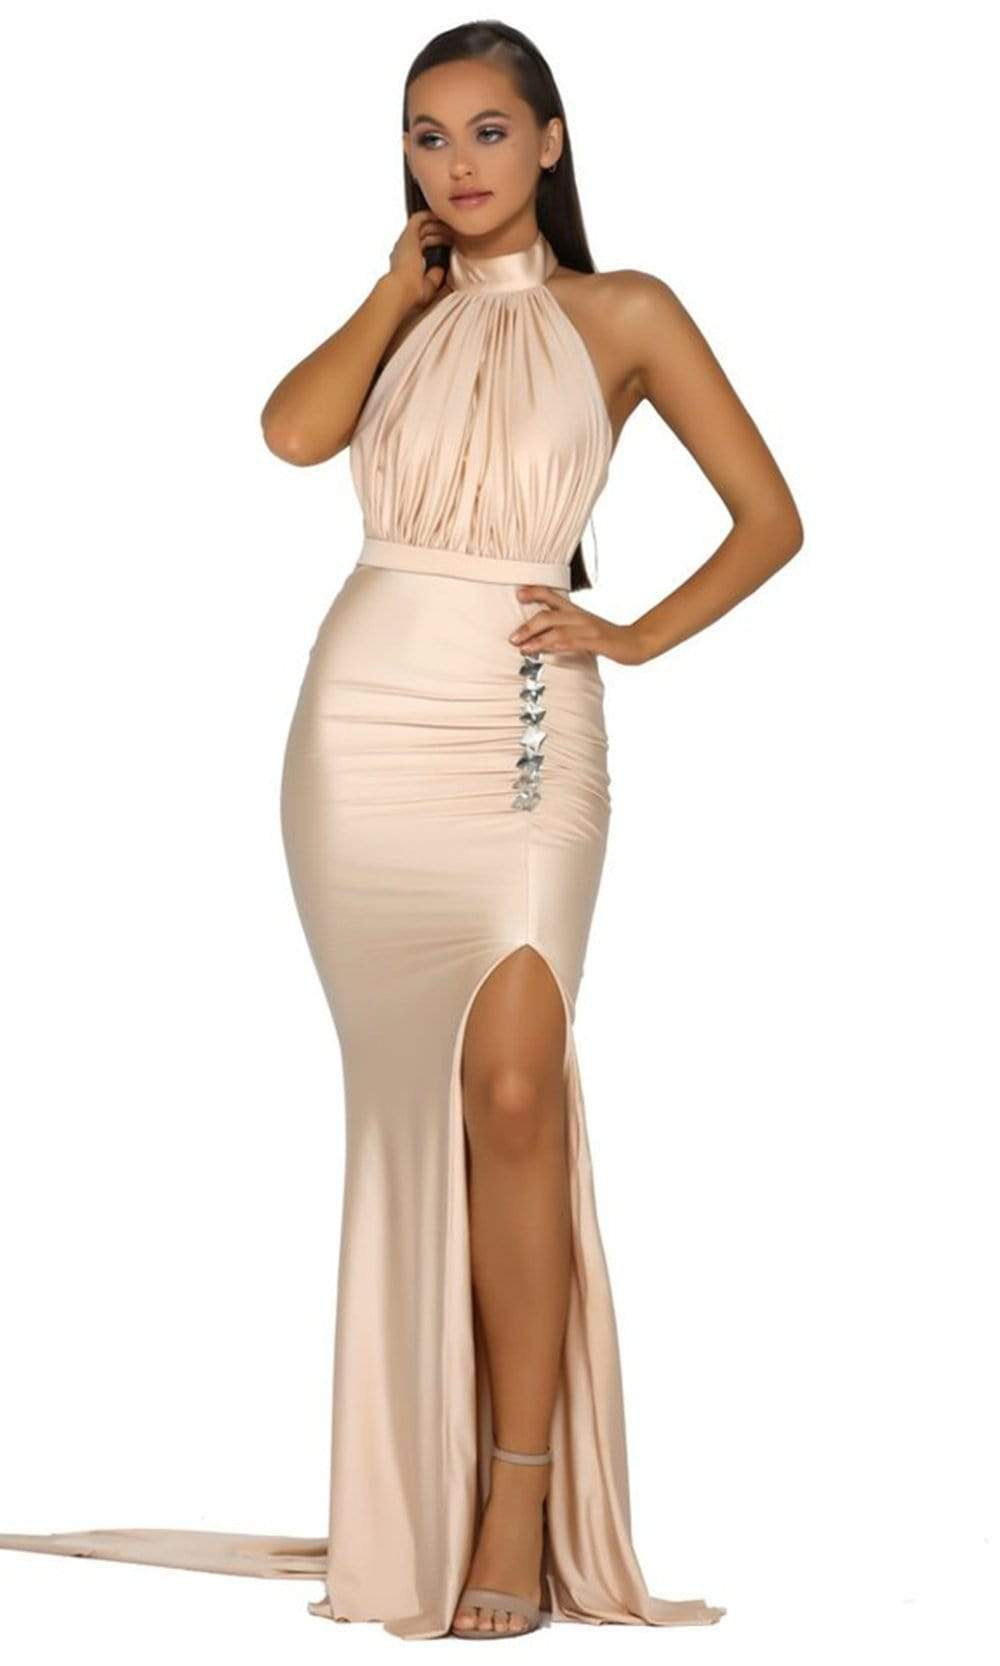 Portia and Scarlett - PS5007 High Halter Trumpet Dress With Slit from Portia and Scarlett